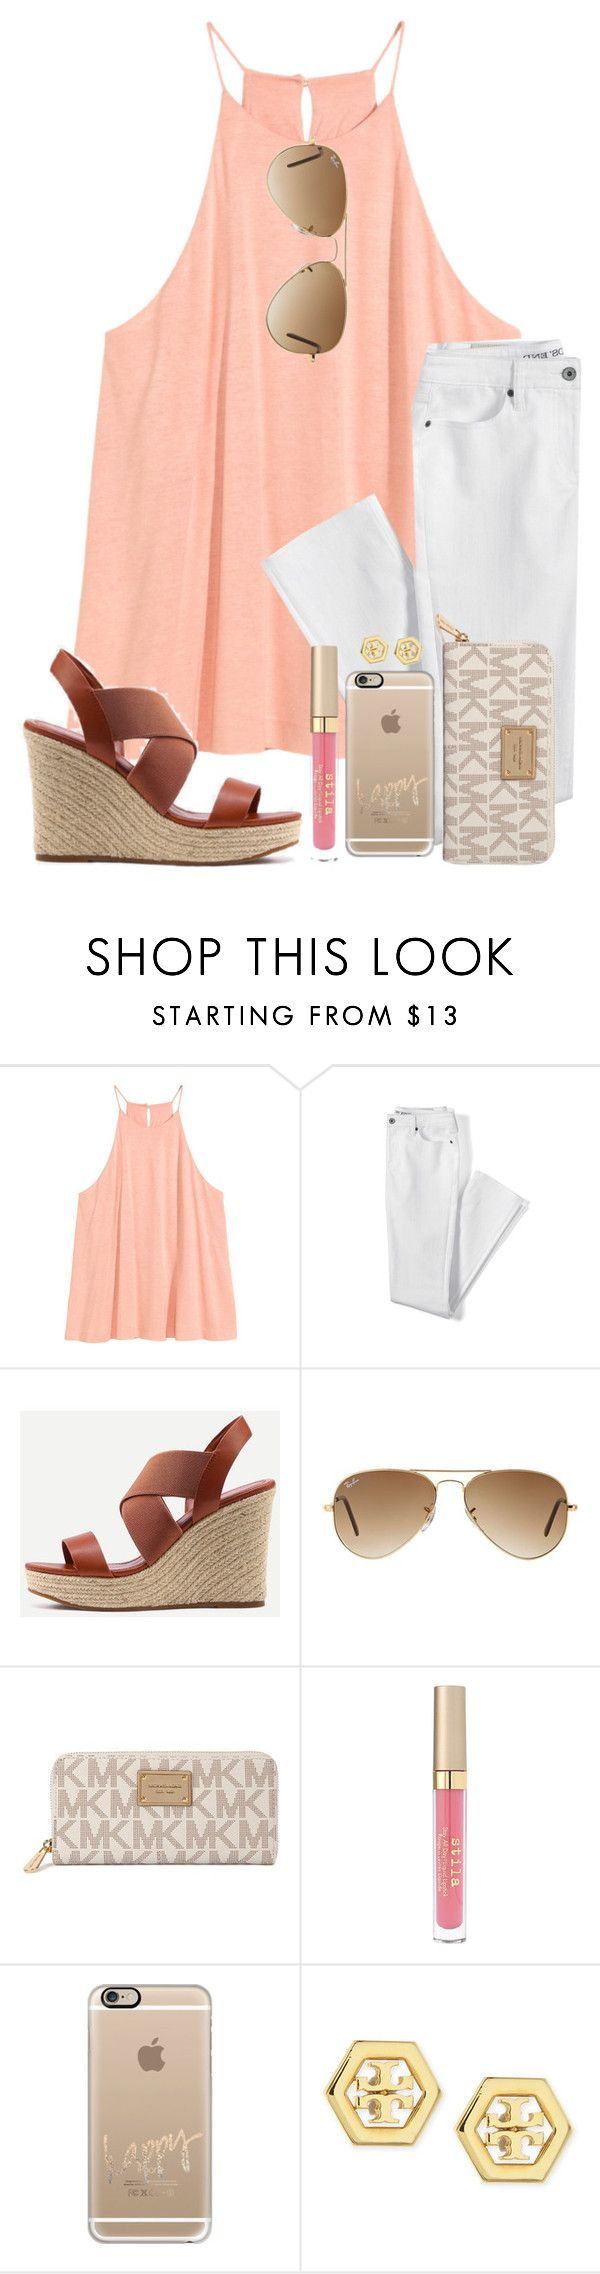 """""""Staying Up And Singing/Yelling Let It Go With Little Kids Is Fun"""" by twaayy ❤ liked on Polyvore featuring Lands' End, Ray-Ban, Michael Kors, Stila, Casetify and Tory Burch"""